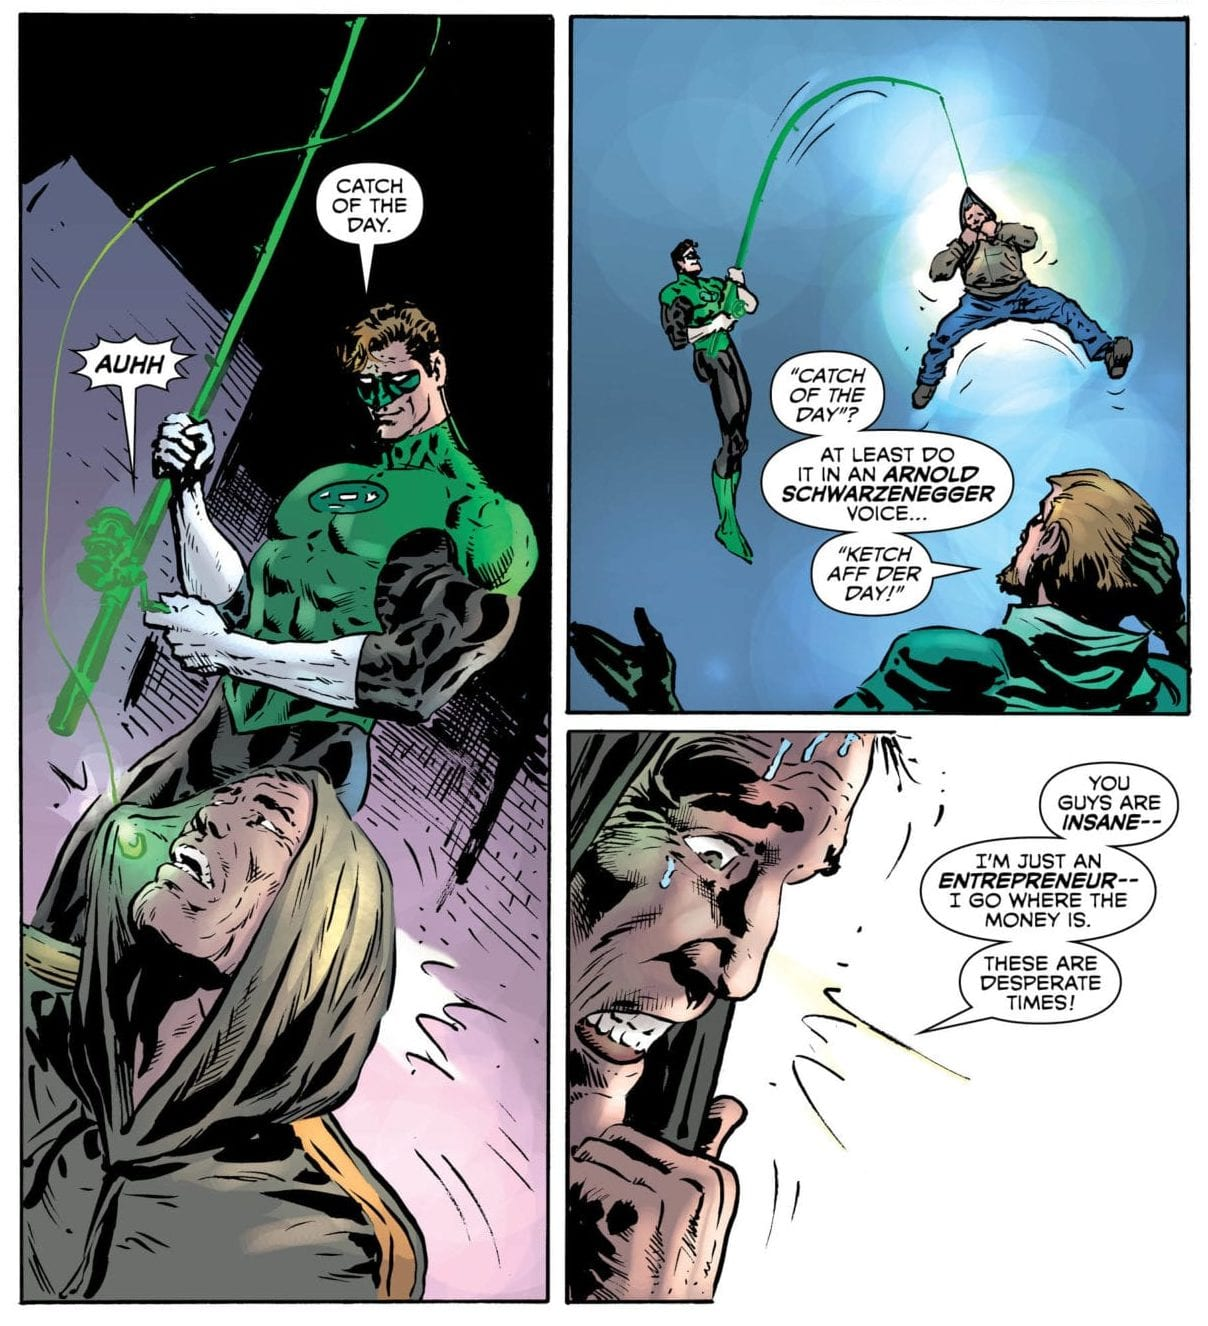 Oliver and Hal team up against drug dealers